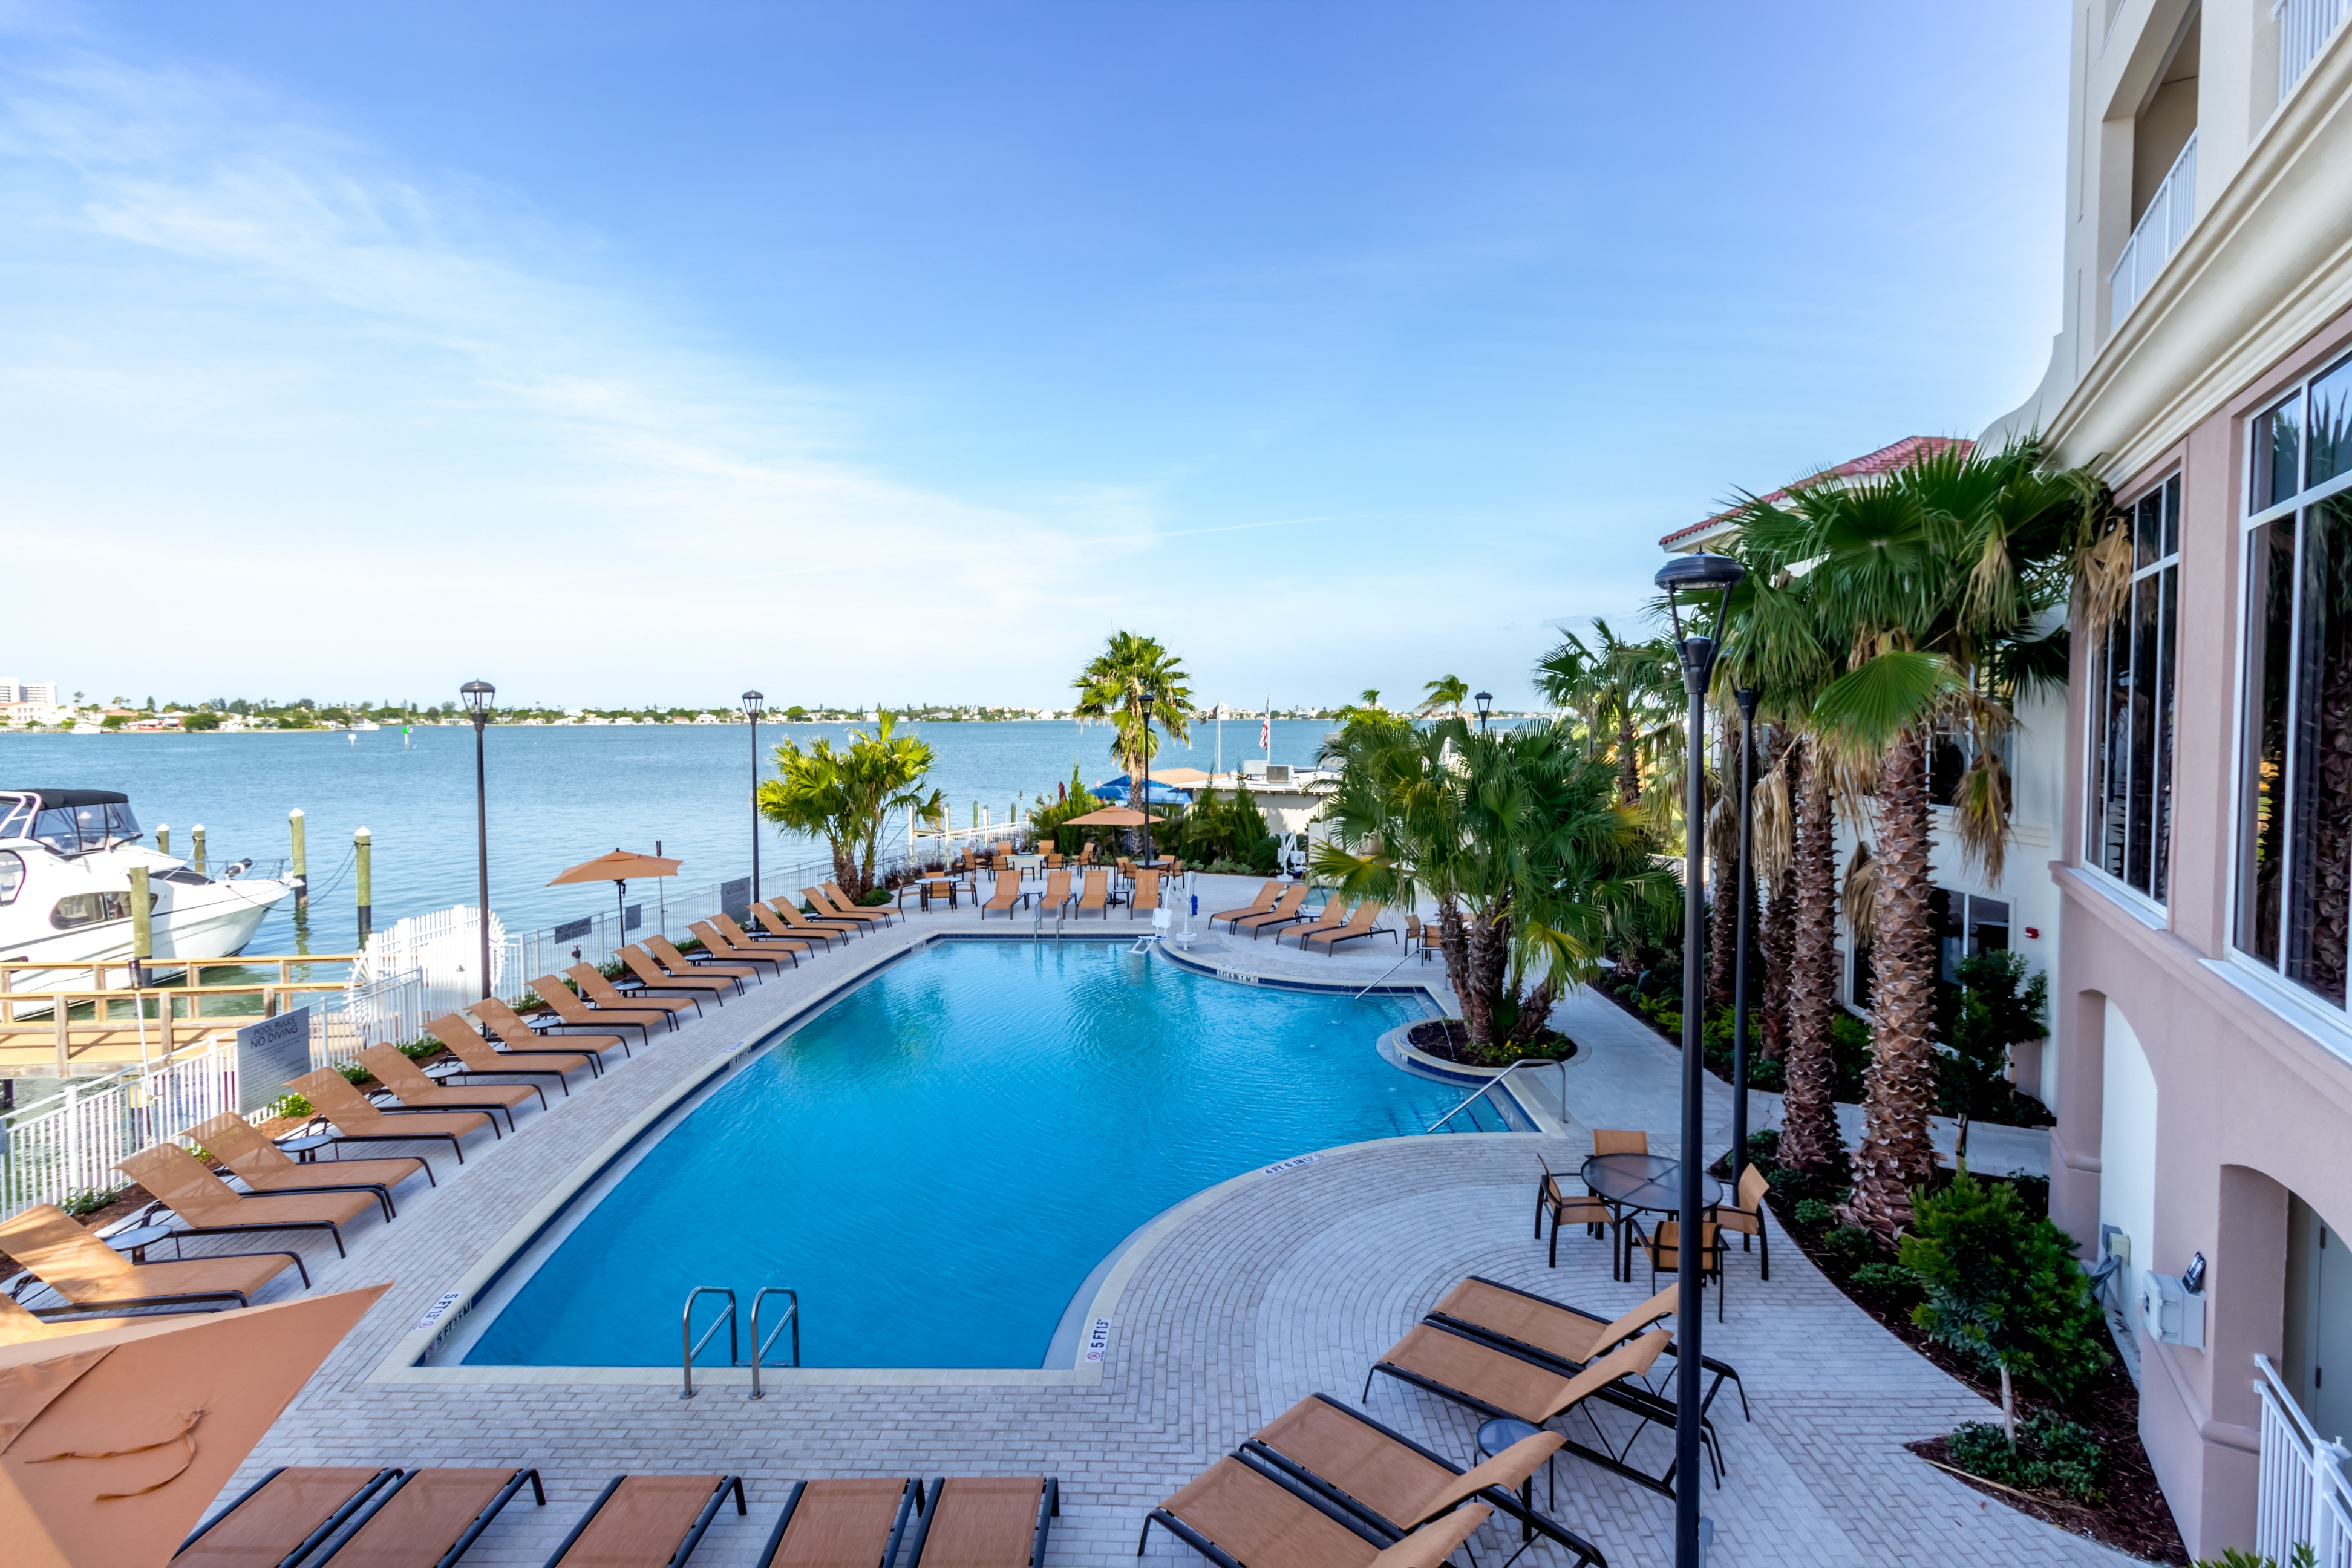 Restaurants in Saint Petersburg, FL: Discover the best restaurants in Saint Petersburg with deals of % off every day. 30% Cash Back at Rollbotto Sushi. 5% Cash Back at Tokyo Japanese Restaurant. 5% Cash Back at Poke Express.